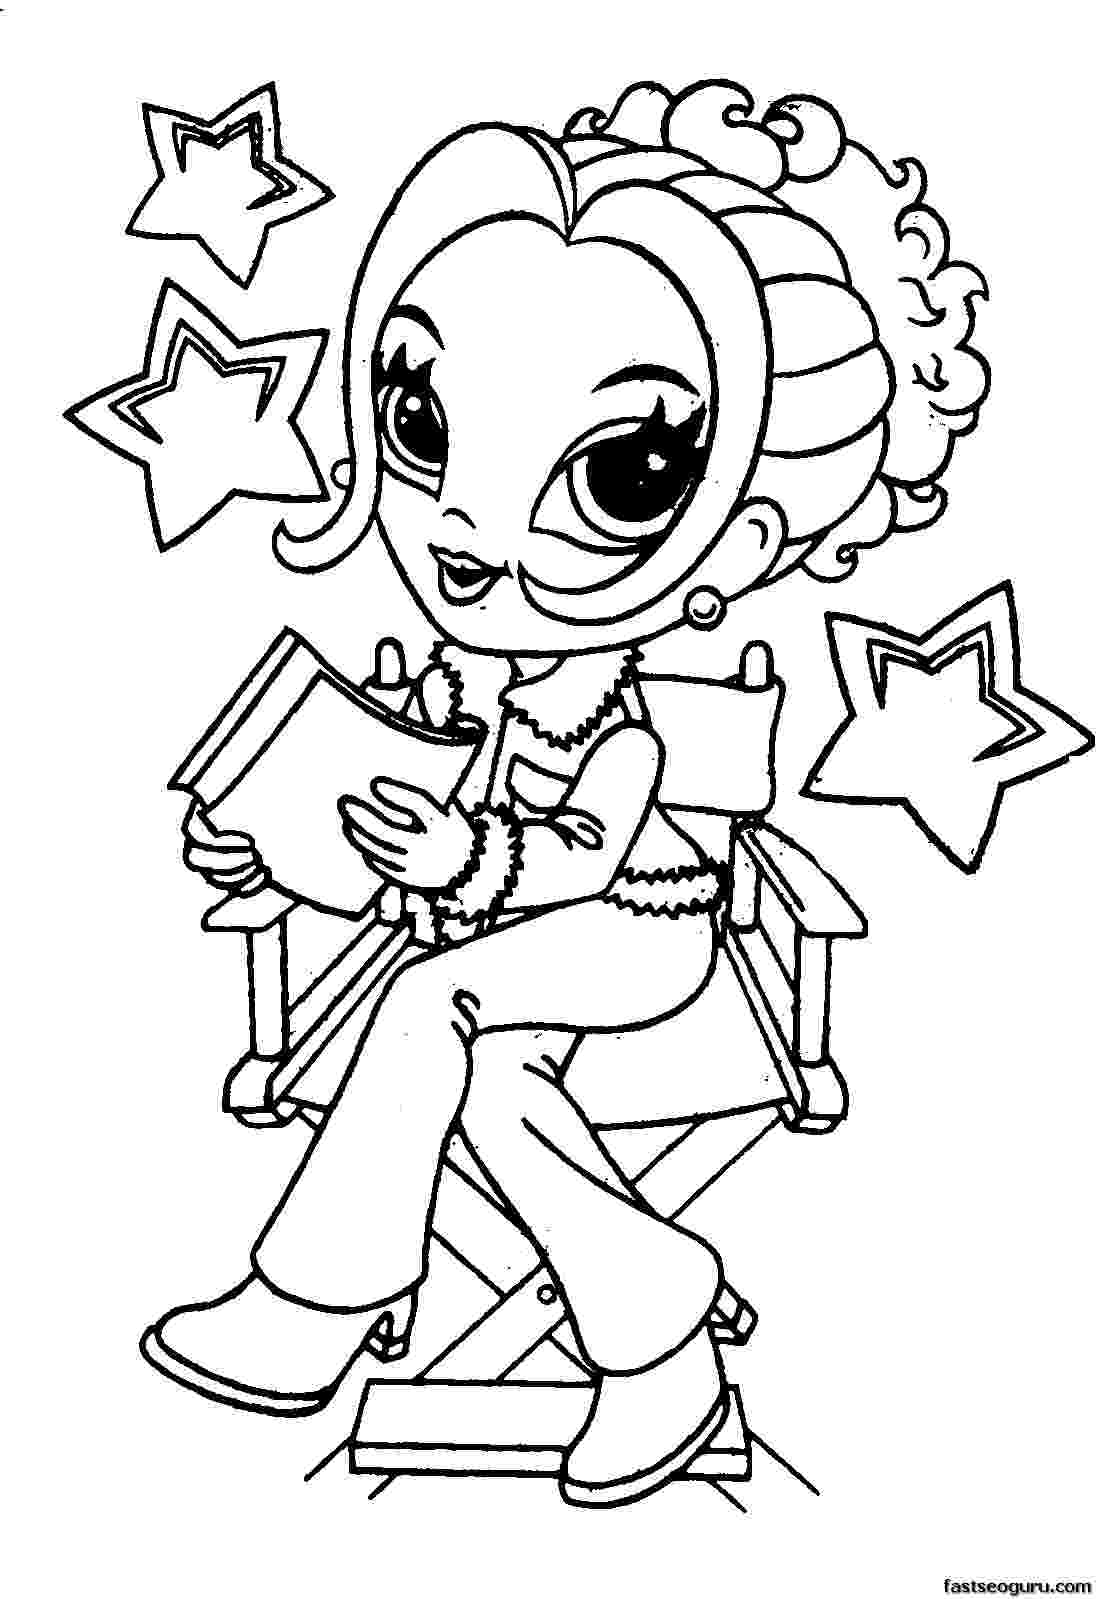 girl pictures to color and print best free printable coloring pages for kids and teens pictures color girl and to print